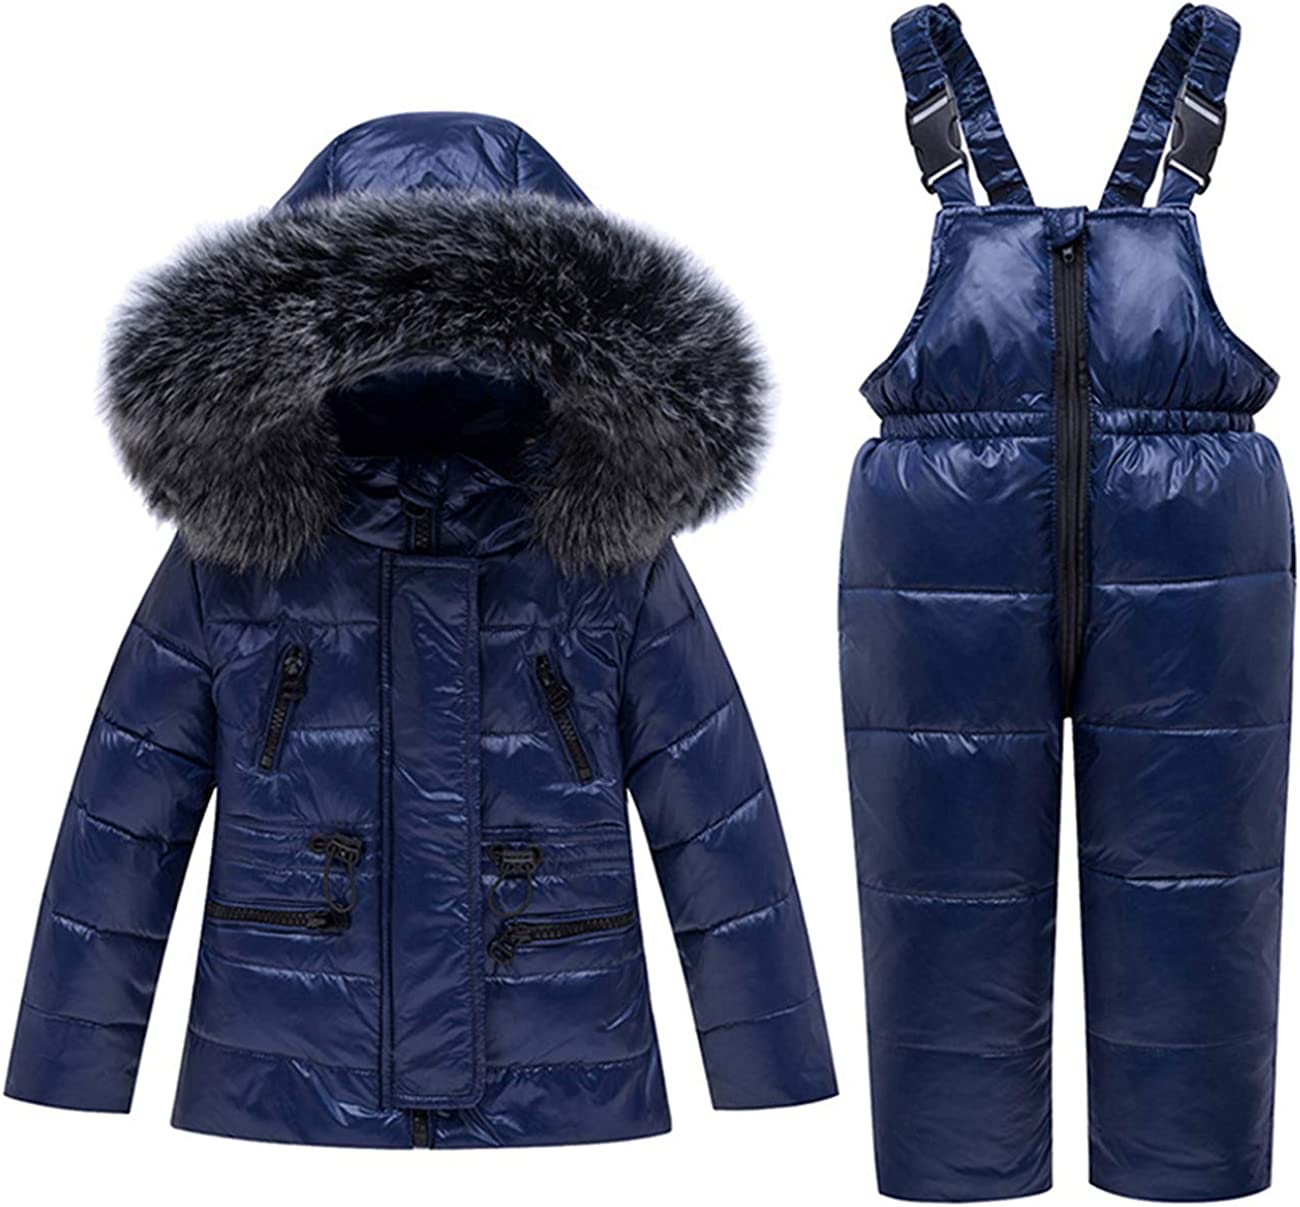 2 Piece Unisex Baby Winter Warm Snowsuit Hoodie Puffer Down Jacket with Snow Ski Bib Pants Outfits